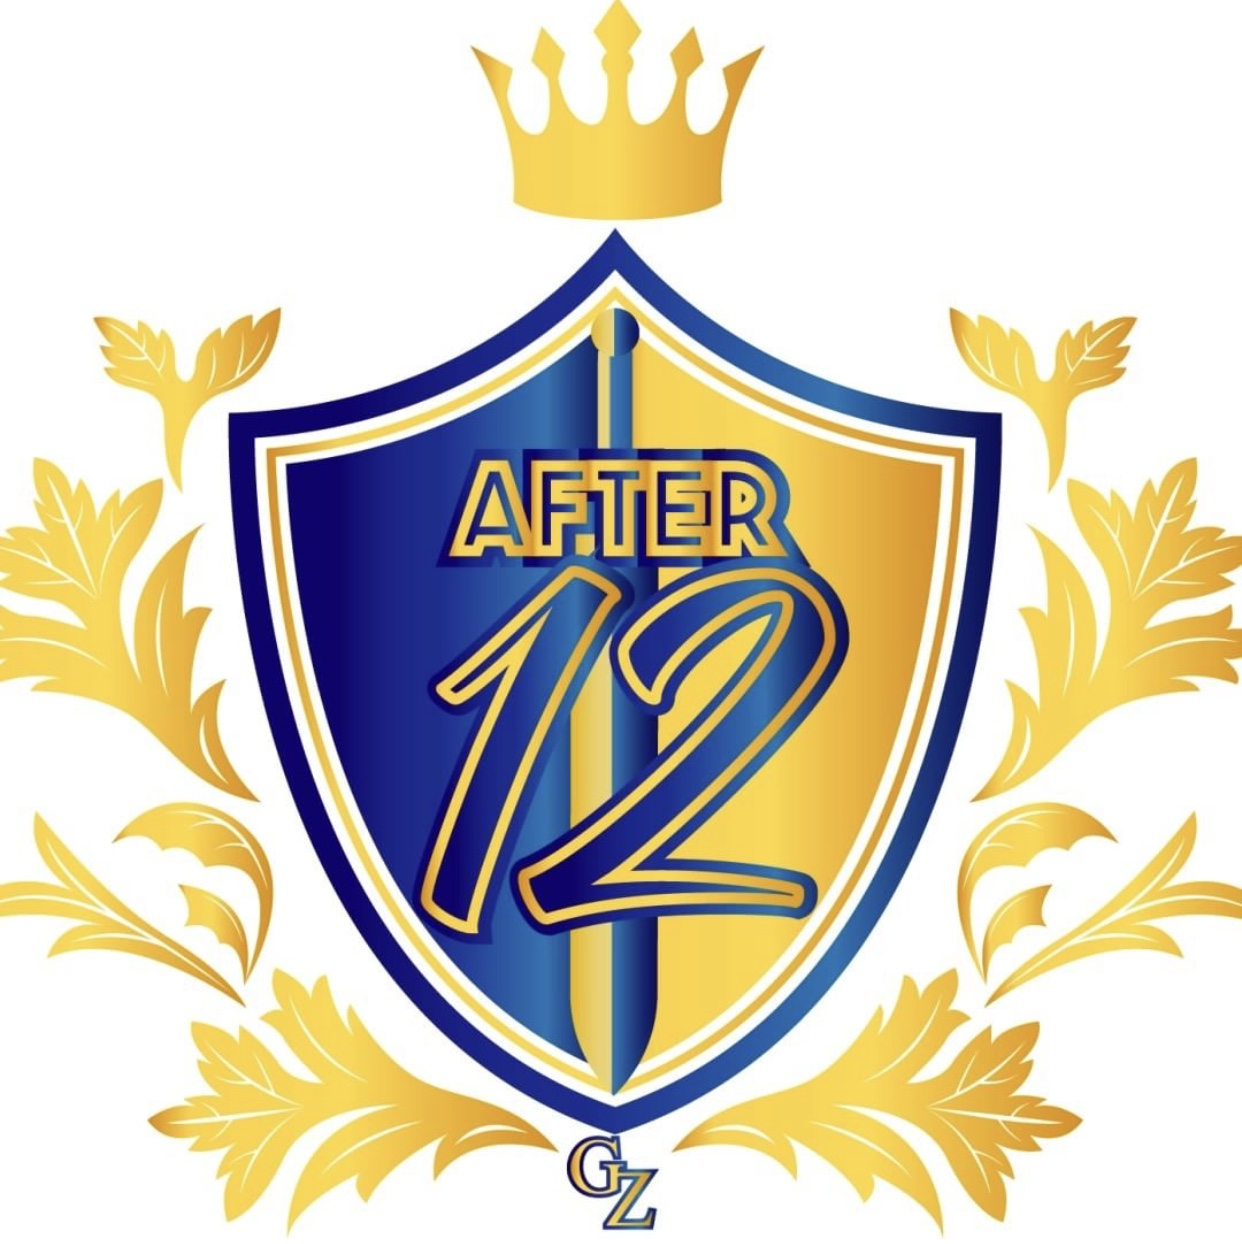 After12